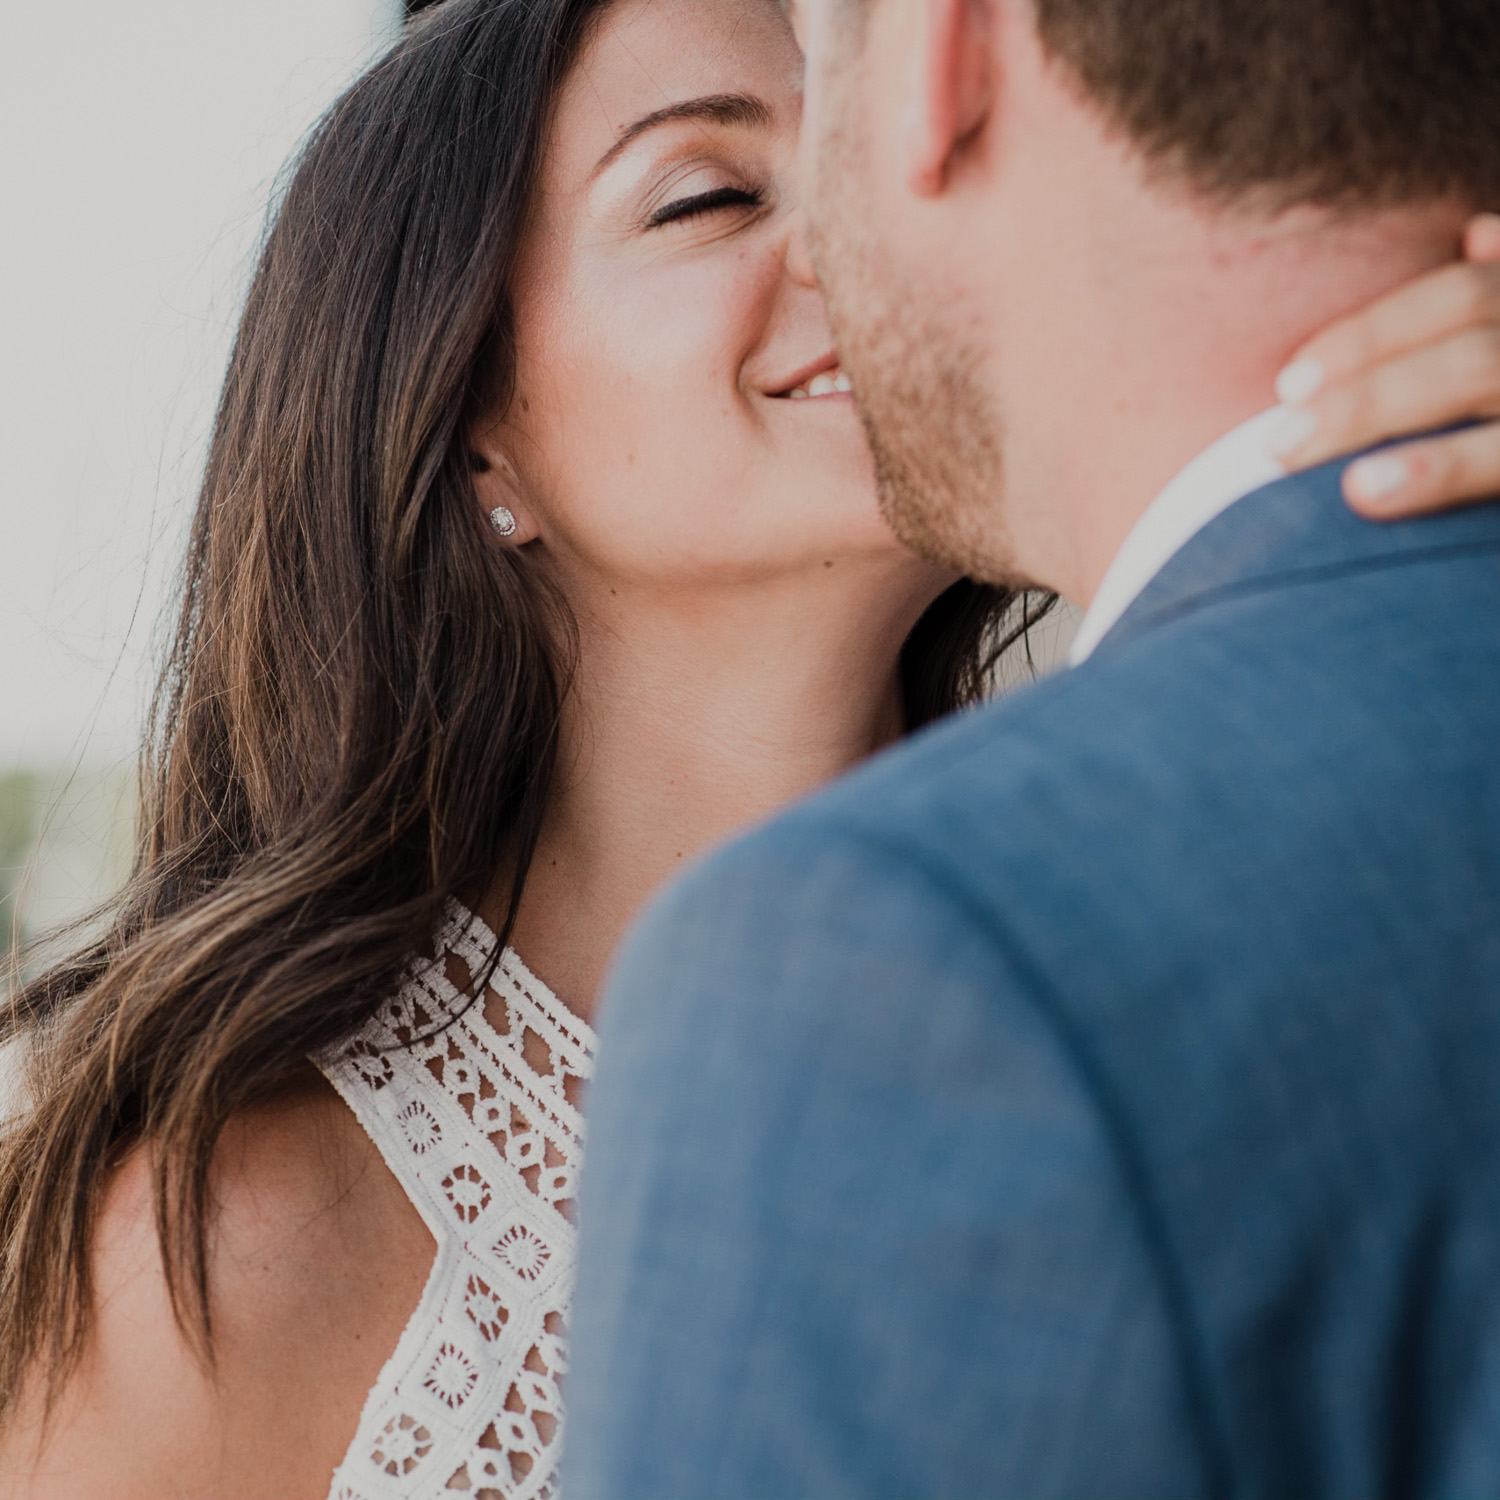 bride kisses groom during first look embrace